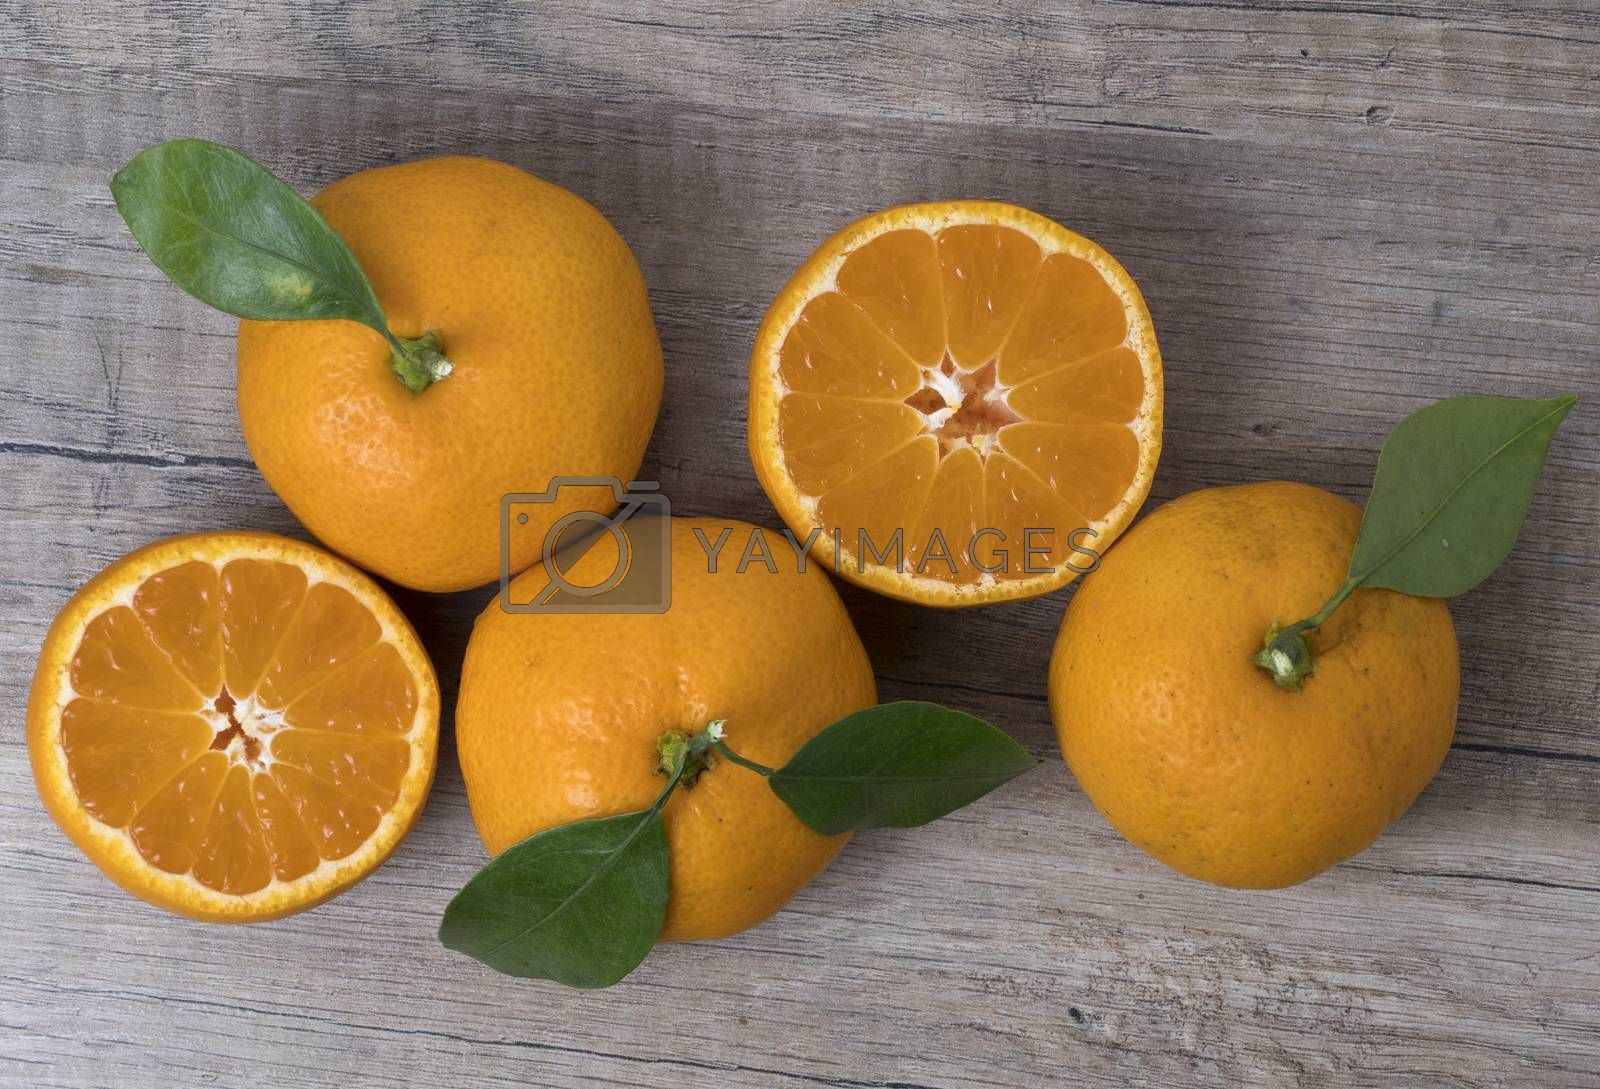 Royalty free image of Fresh ripe tangerines with leaves on a wooden background. by phortcach